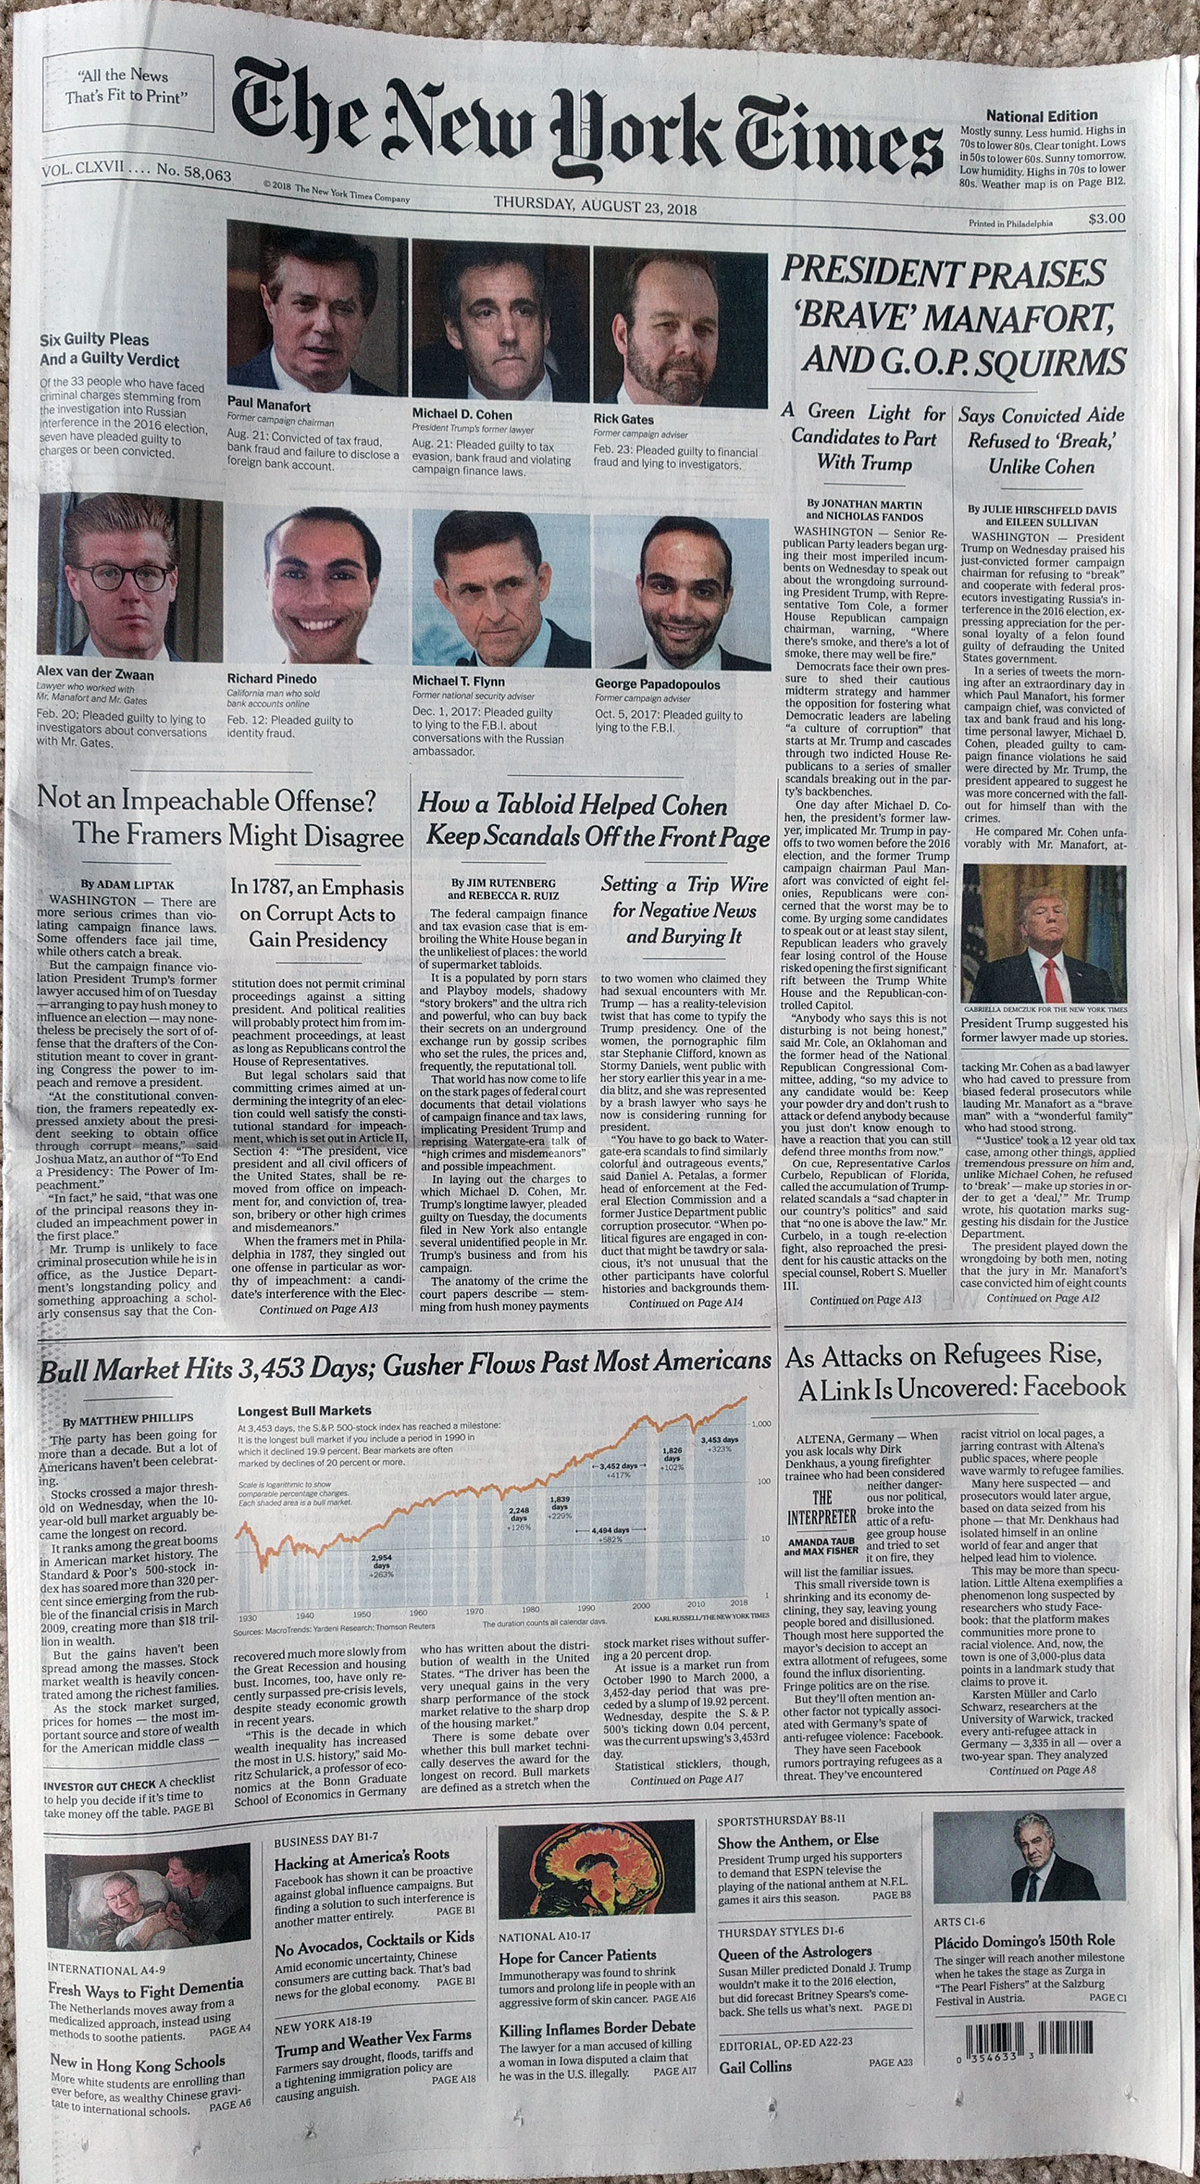 The front page design